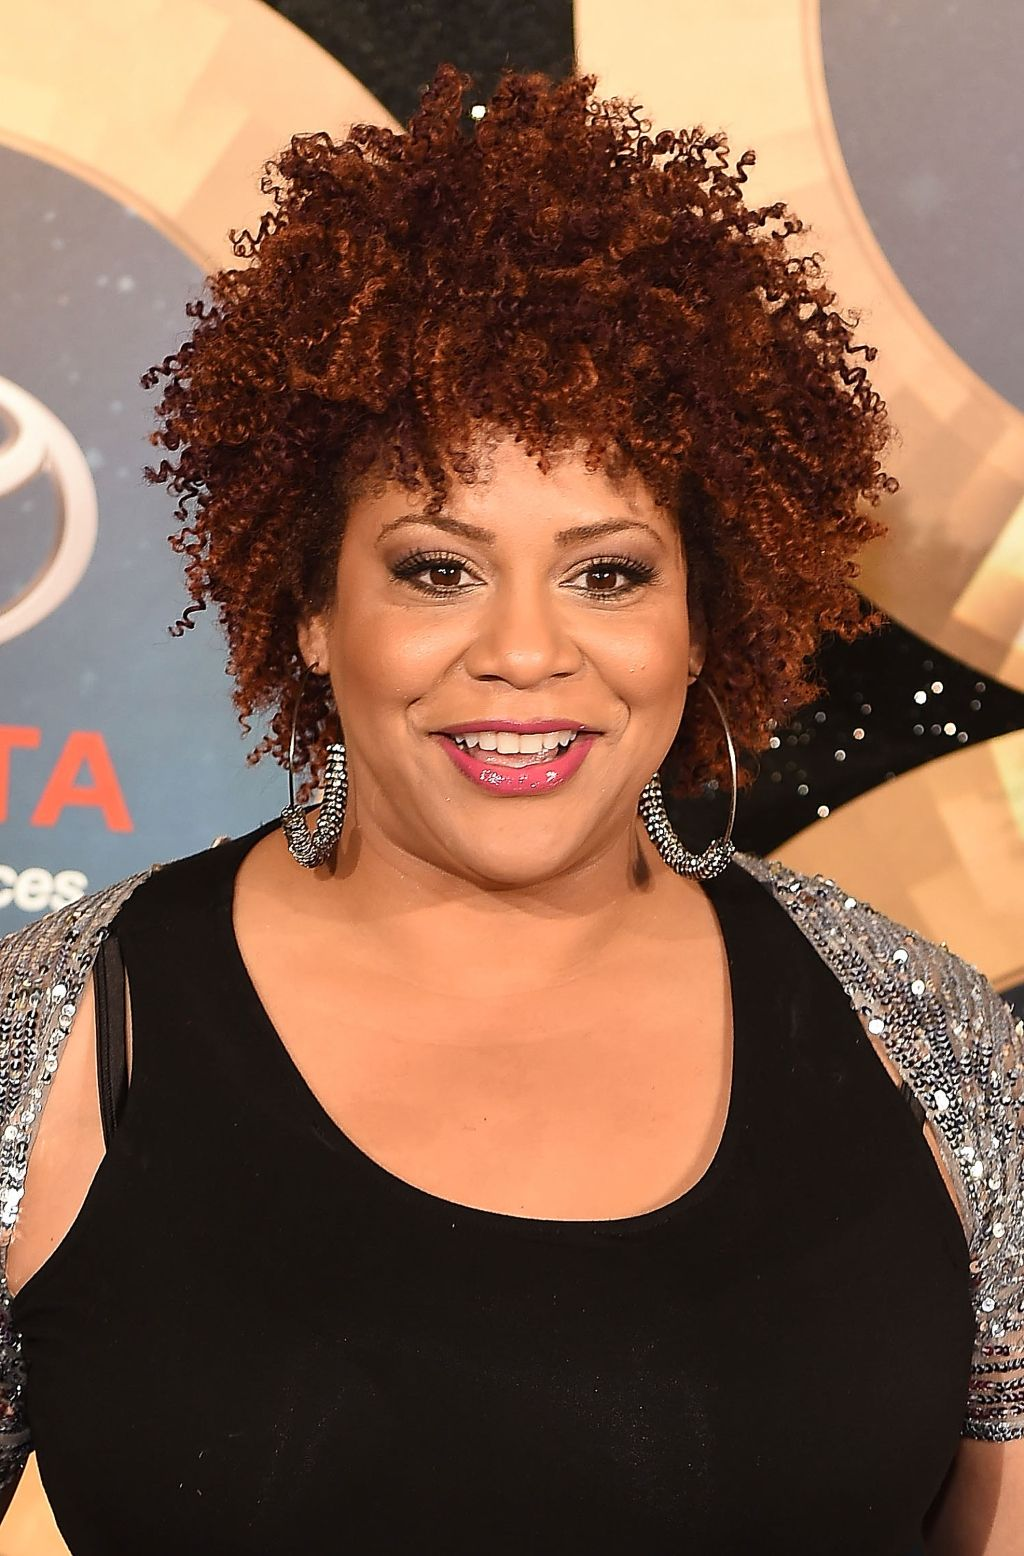 Communication on this topic: Florence Hackett, kim-coles/